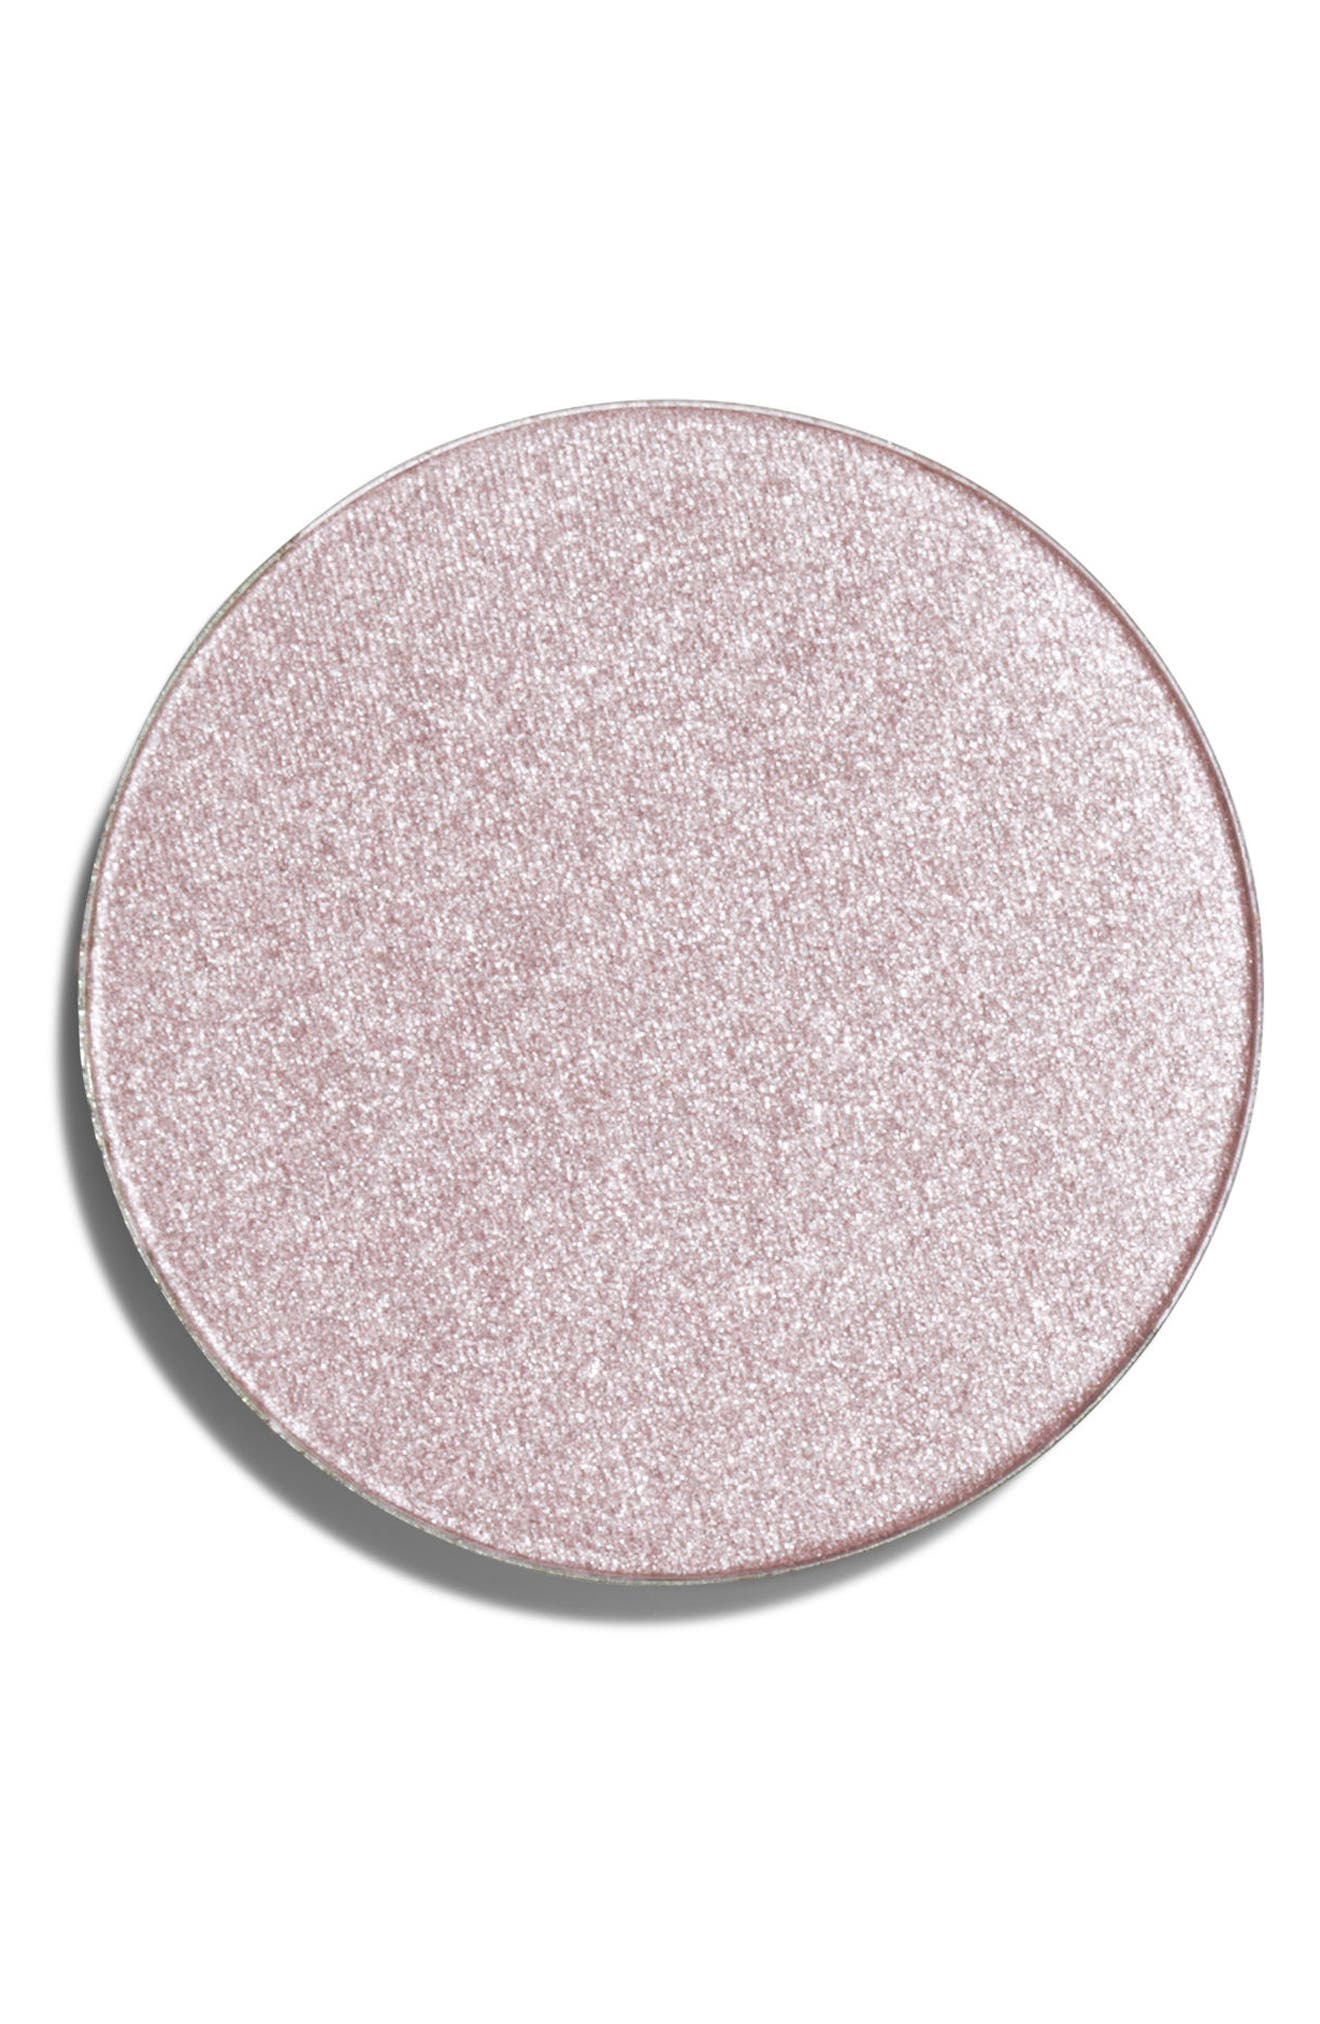 Iridescent Eye Shade Refill,                             Main thumbnail 1, color,                             LILAC ROSE